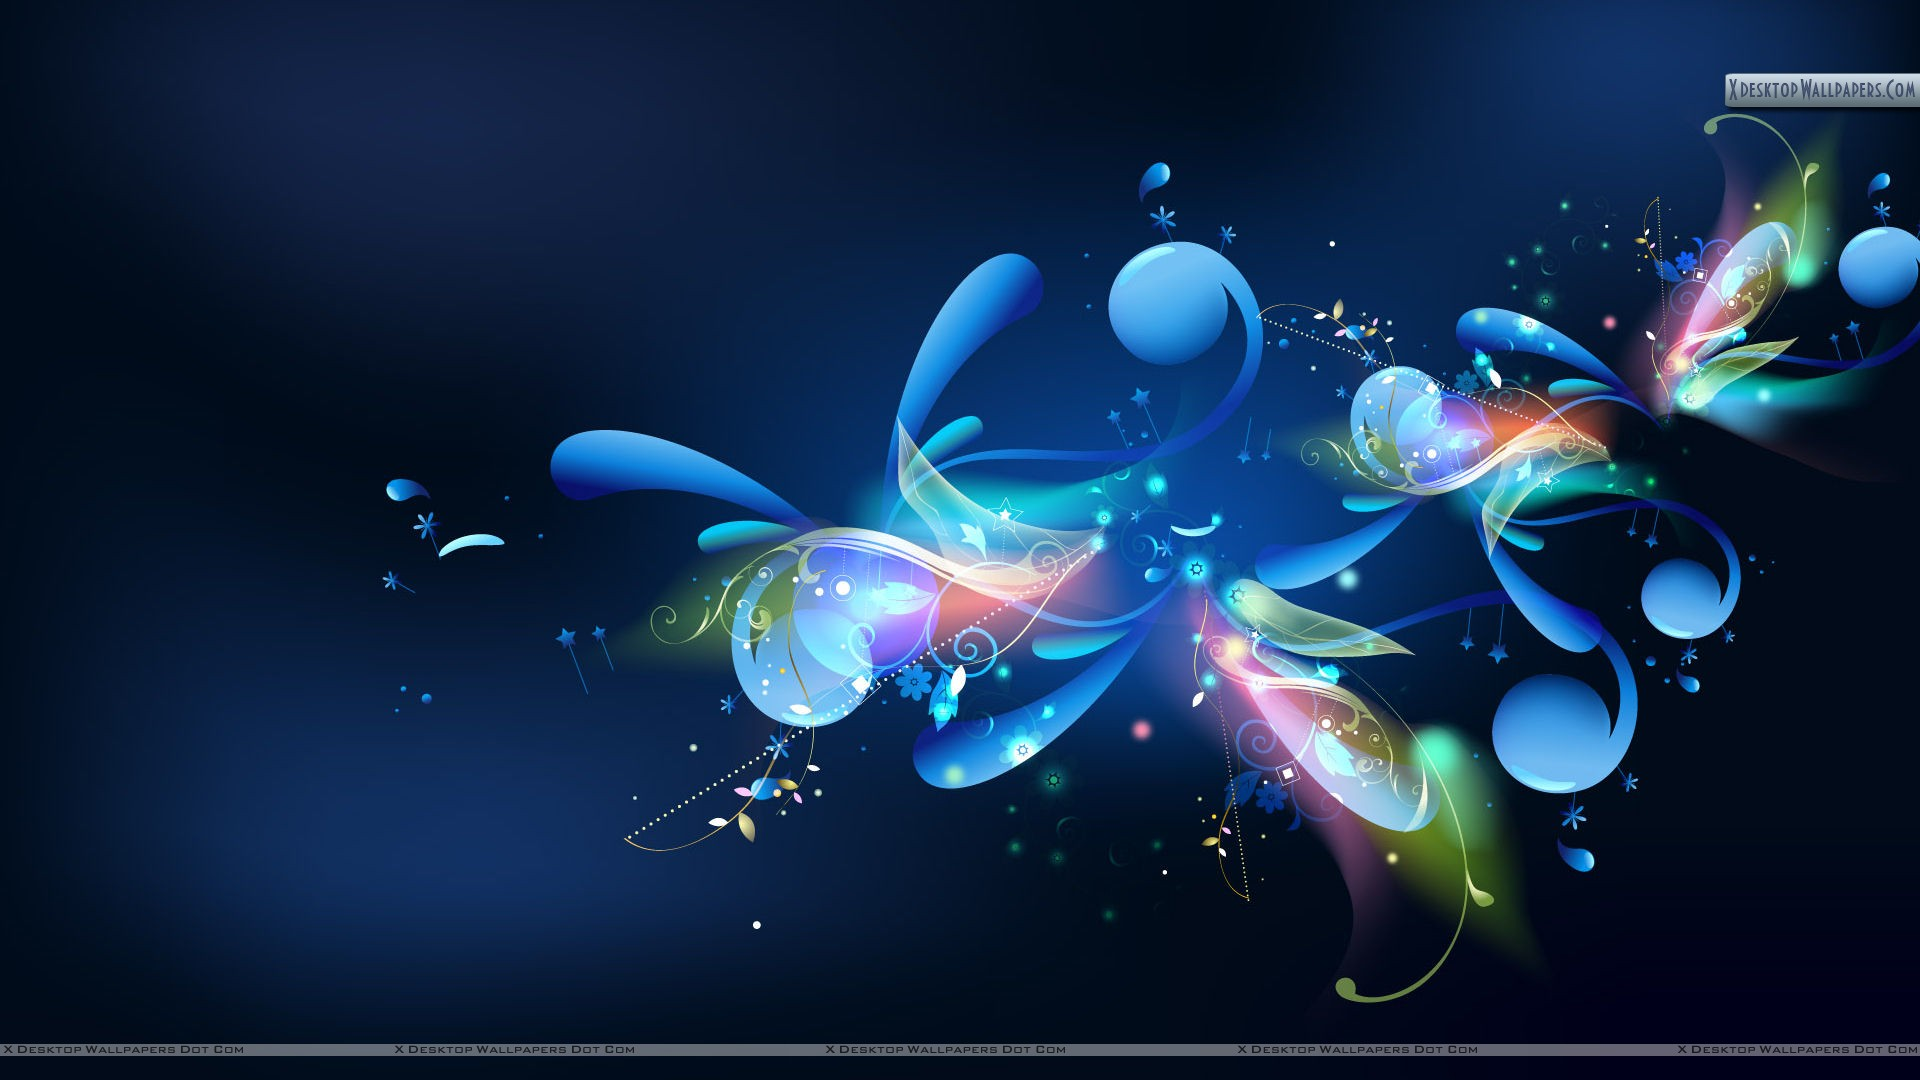 Cool Abstract Blue Looking Background wallpapers HD   188142 1920x1080